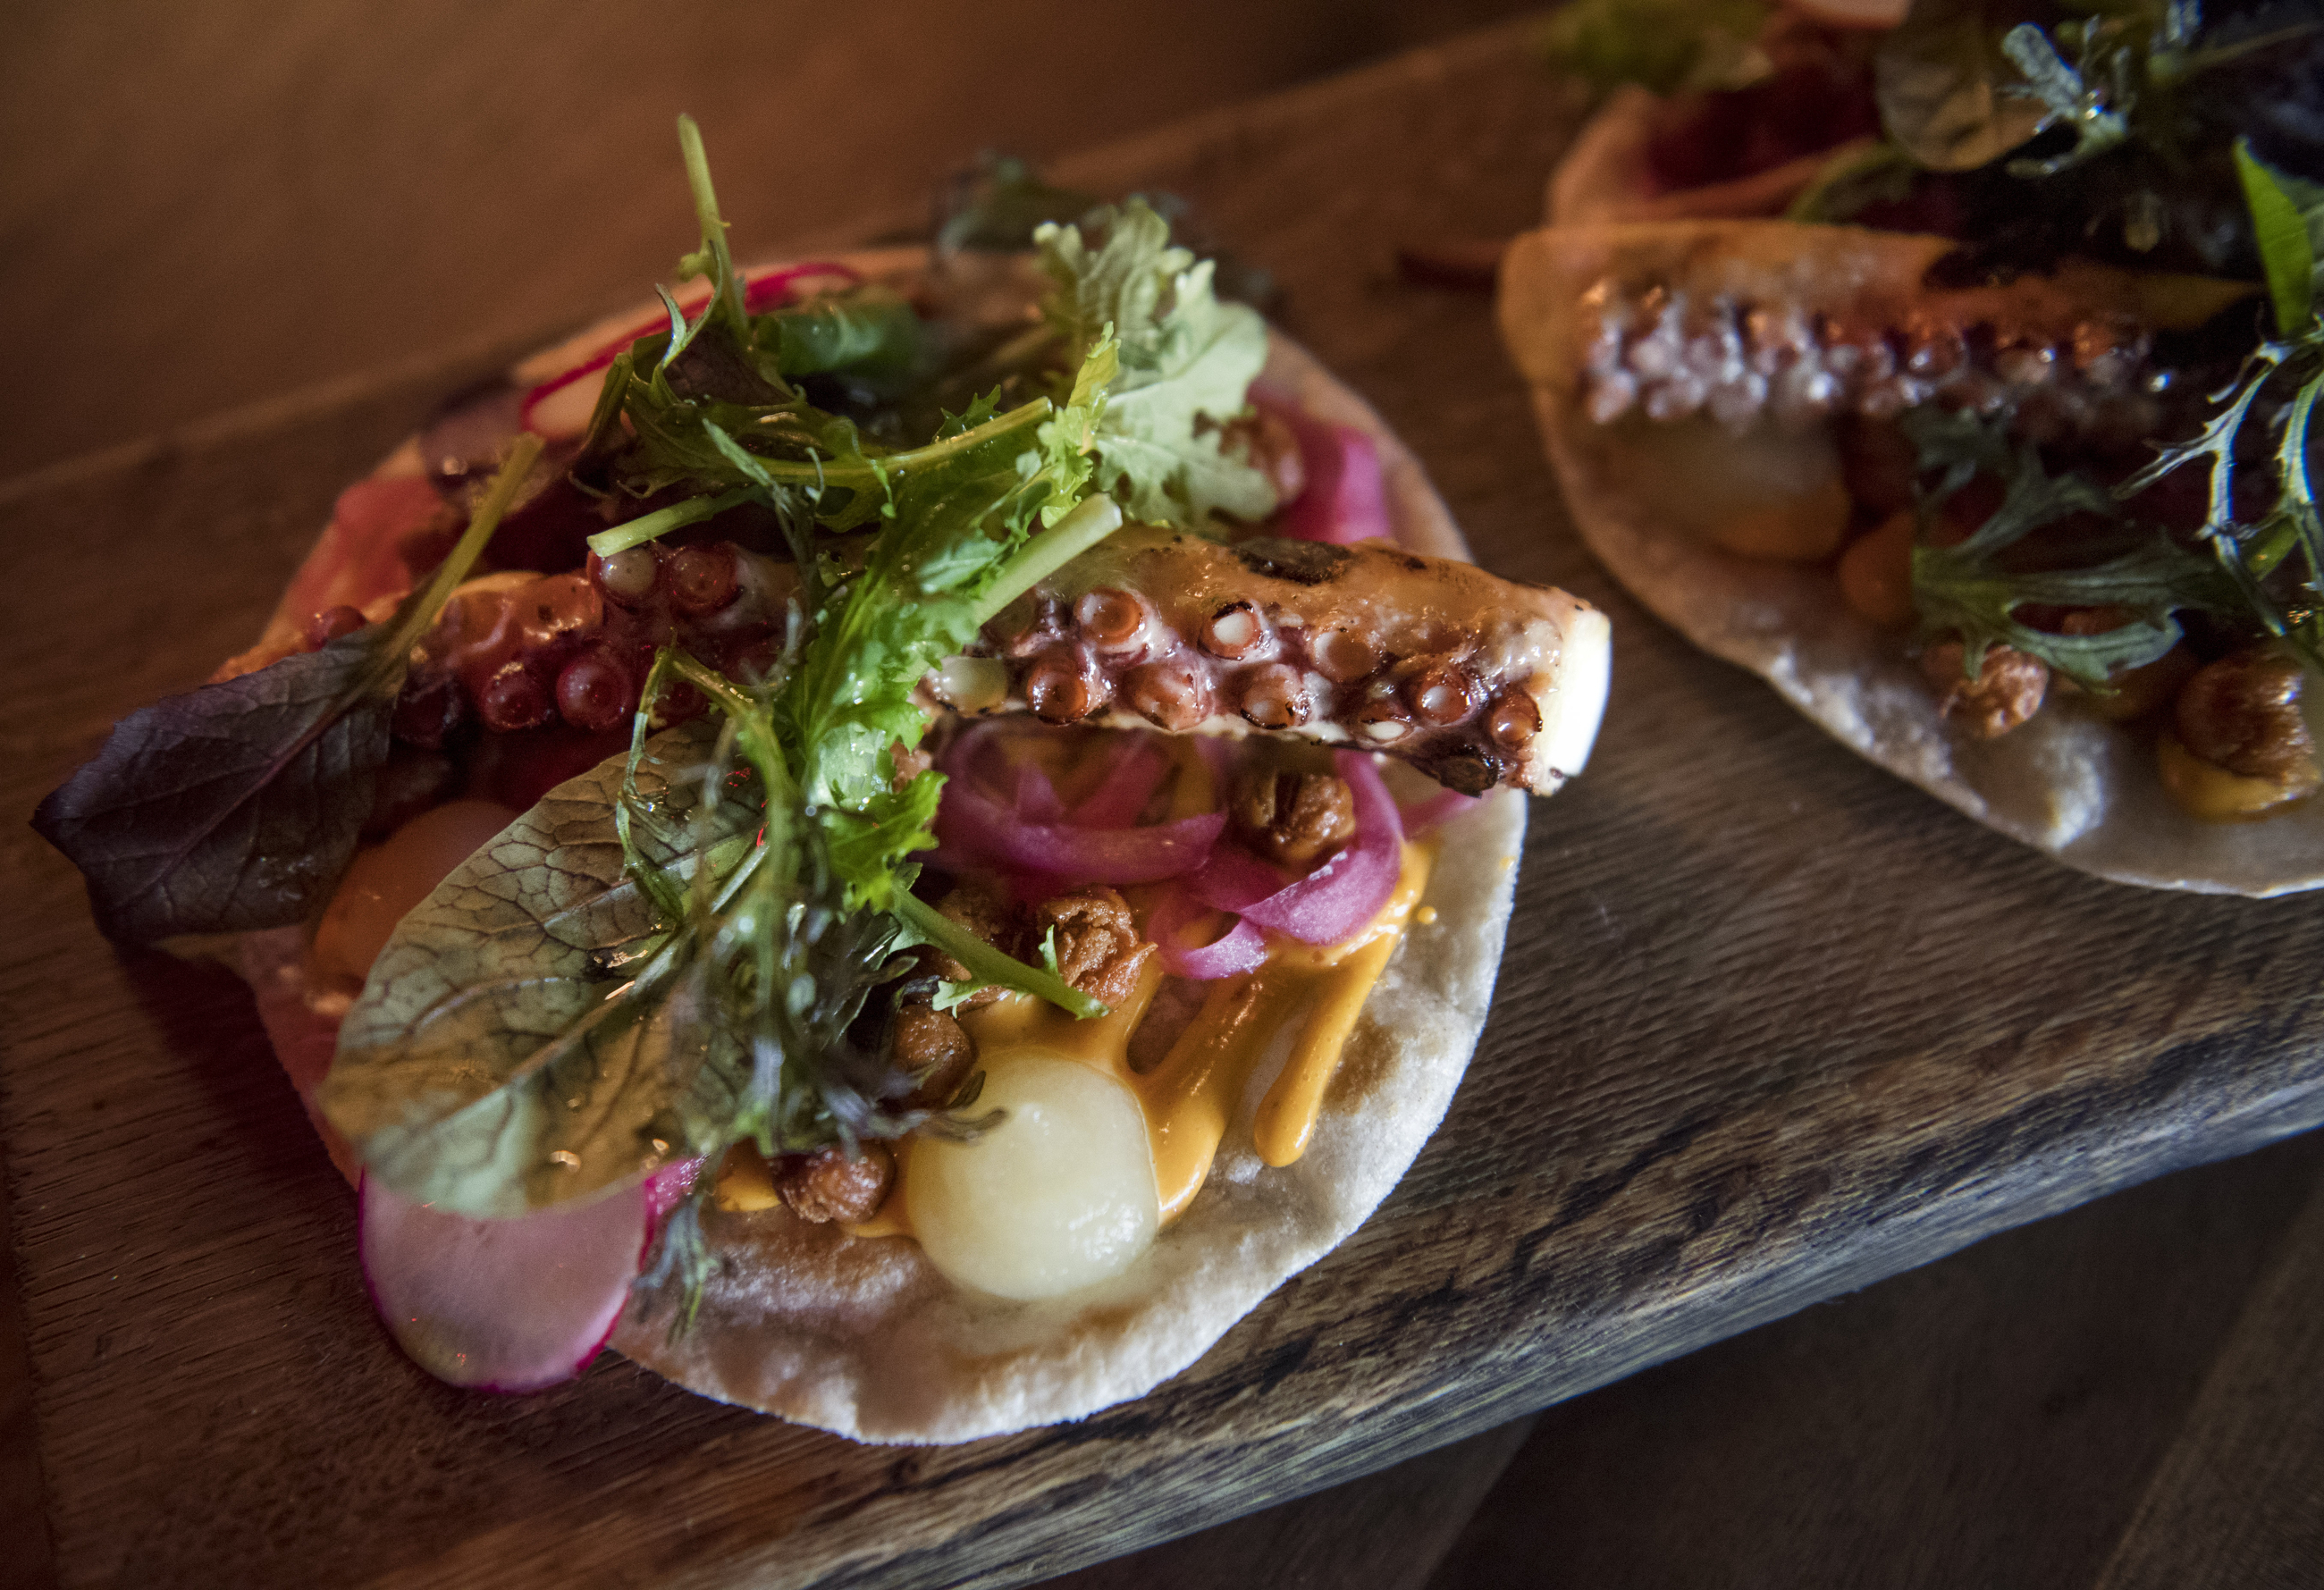 20170523scTako01 The Tako taco, which includes grilled octopus, harissa aioli, preserved lemons, mizuna greens & herbs and pickled red onion, is photographed on Tuesday, May 23, 2017 at Tako downtown.